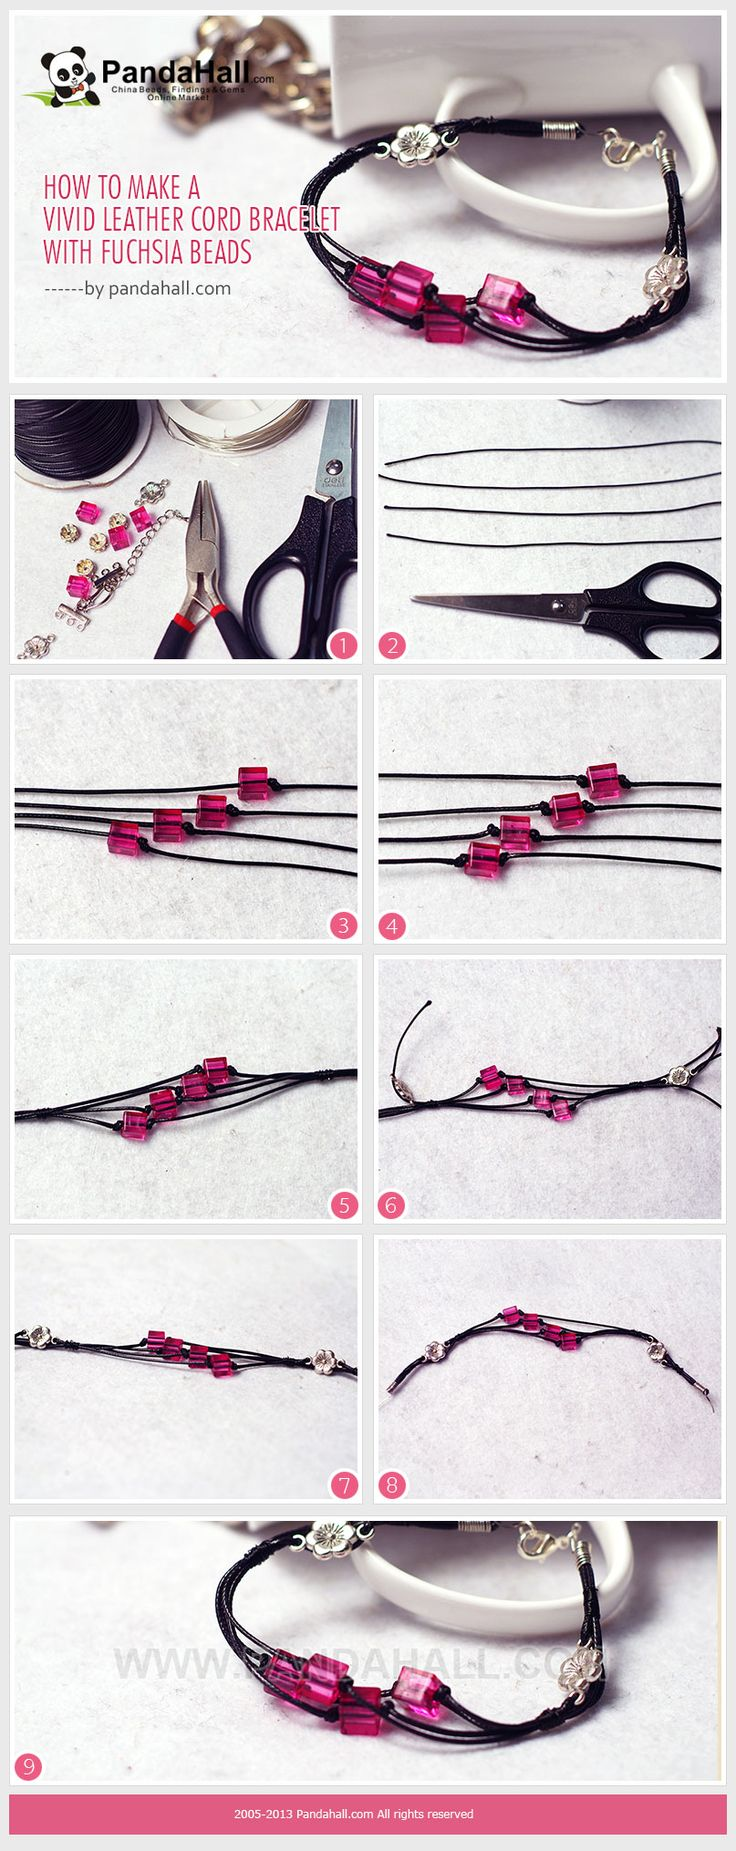 How to Make a Vivid Leather Cord Bracelet with Fuchsia Beads or any colour to your liking